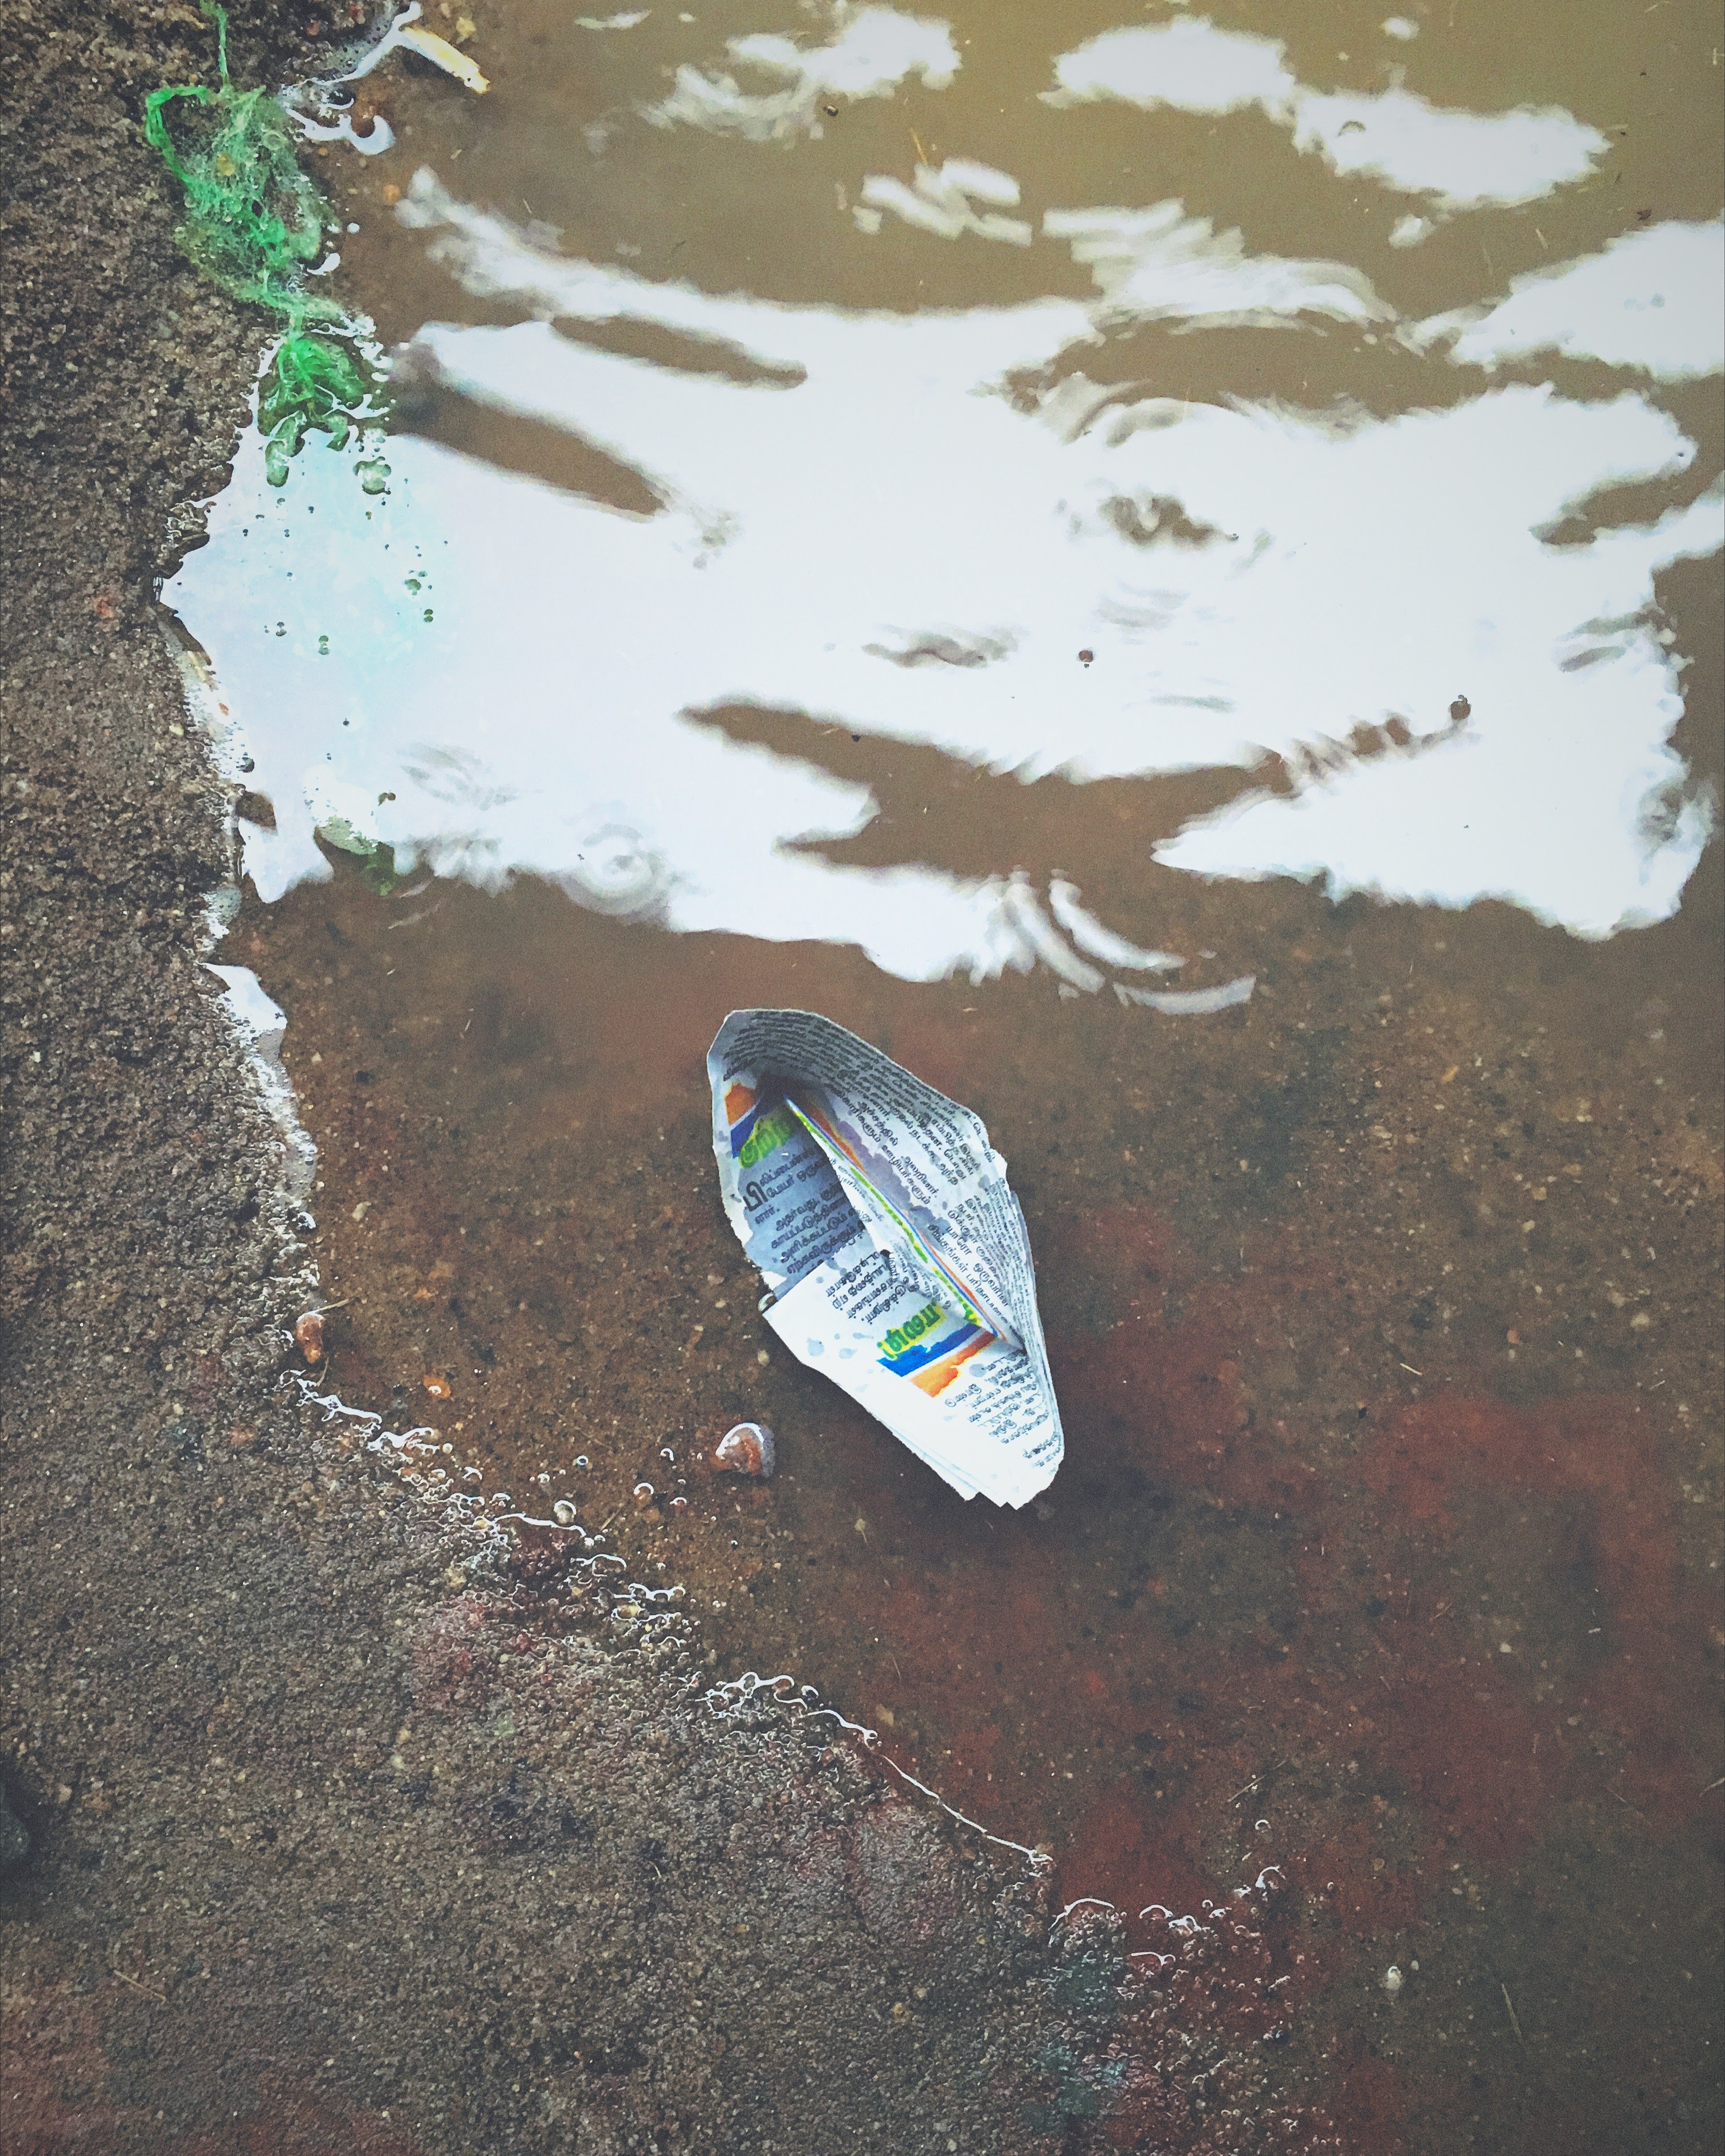 Newspaper Boat Stuck In A Puddle